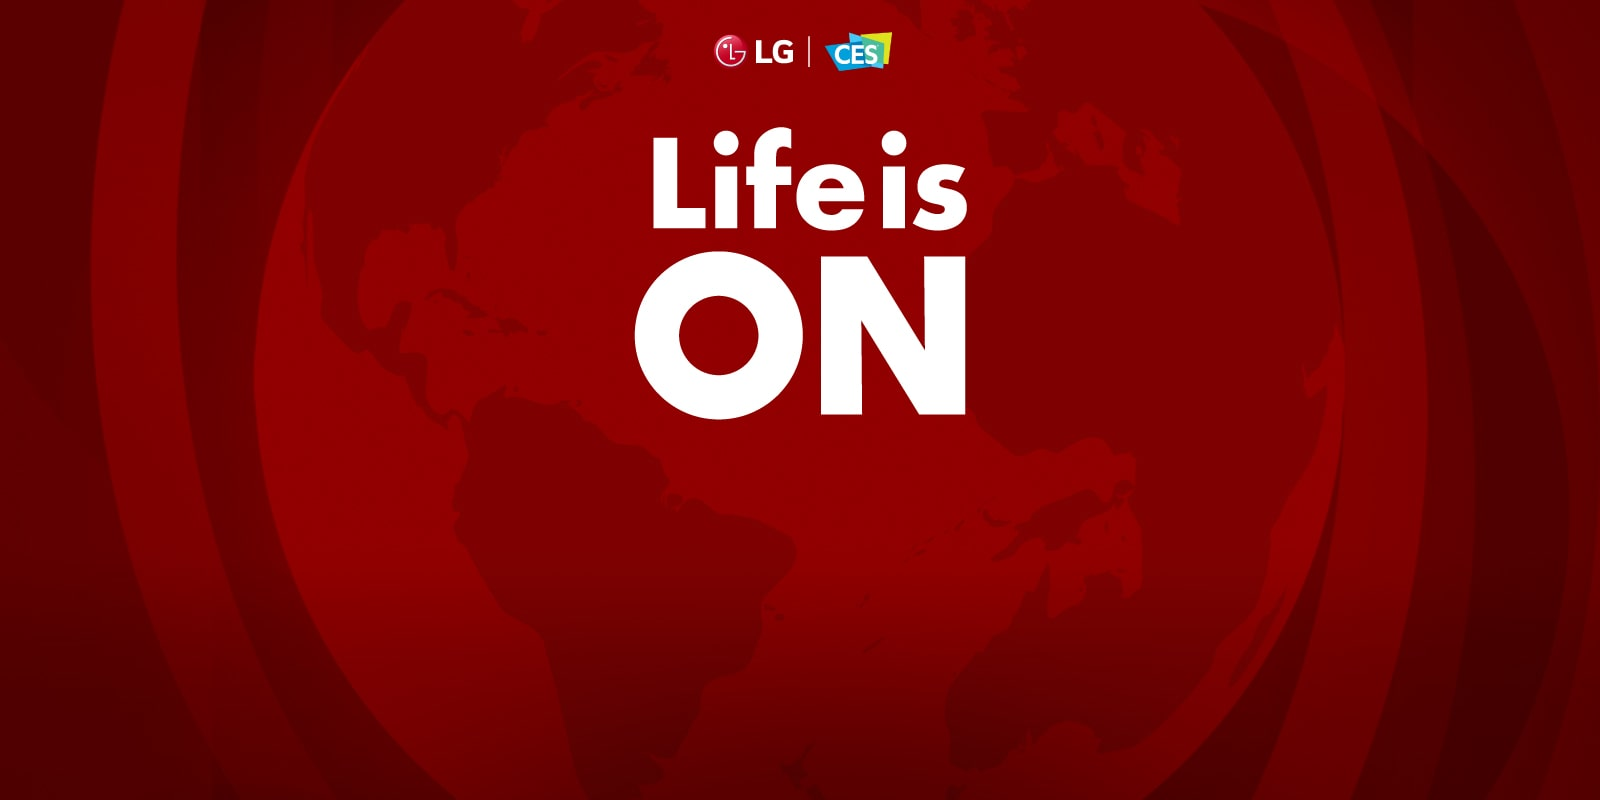 LG Electronics' CES 2021 theme is Life is ON, and the slogan is 'Make Yourself at home'